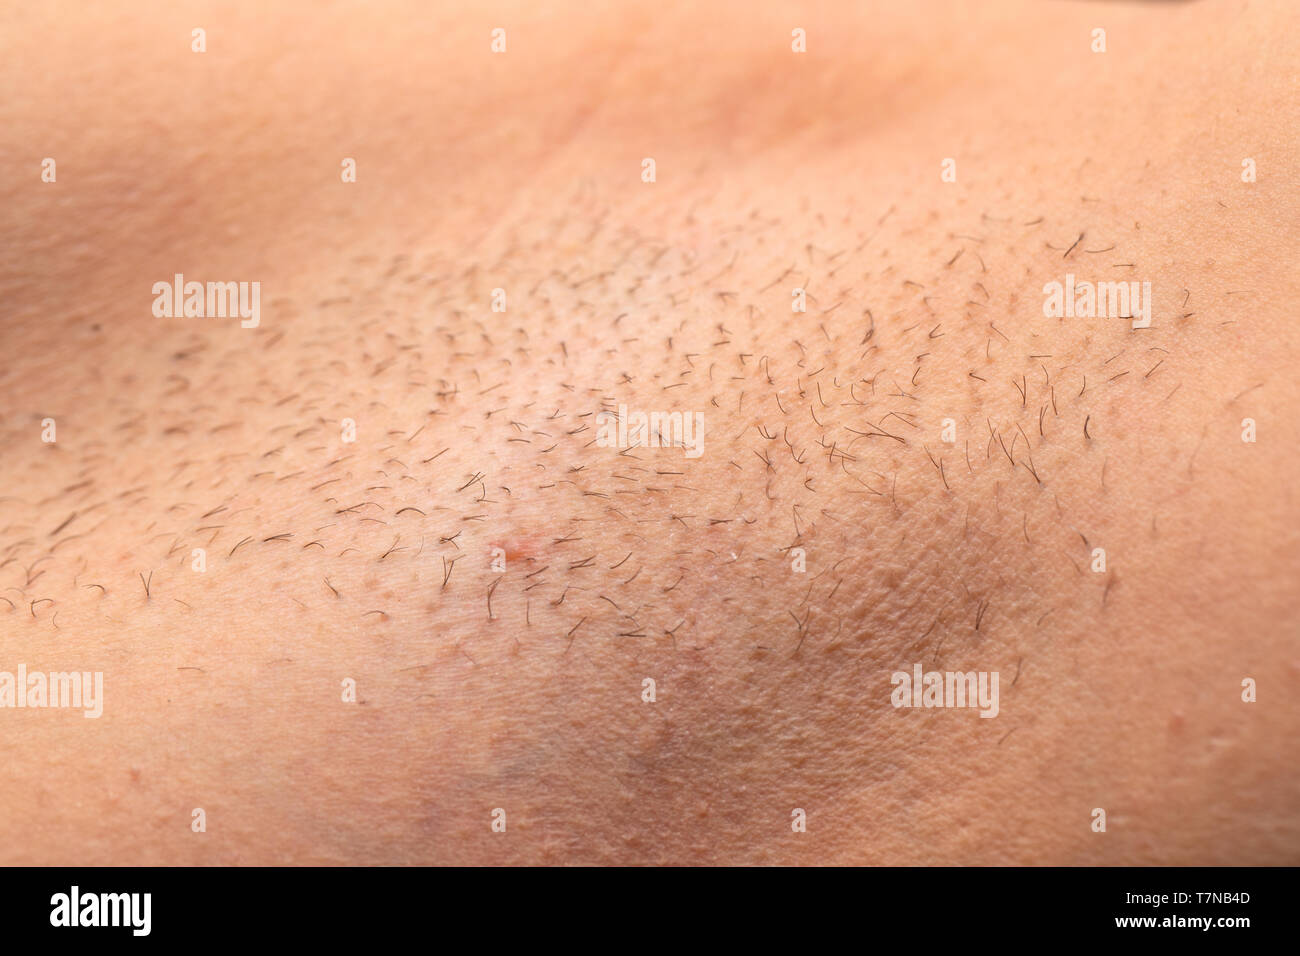 Close up picture of unshaved armpit, hair growing on human skin - Stock Image